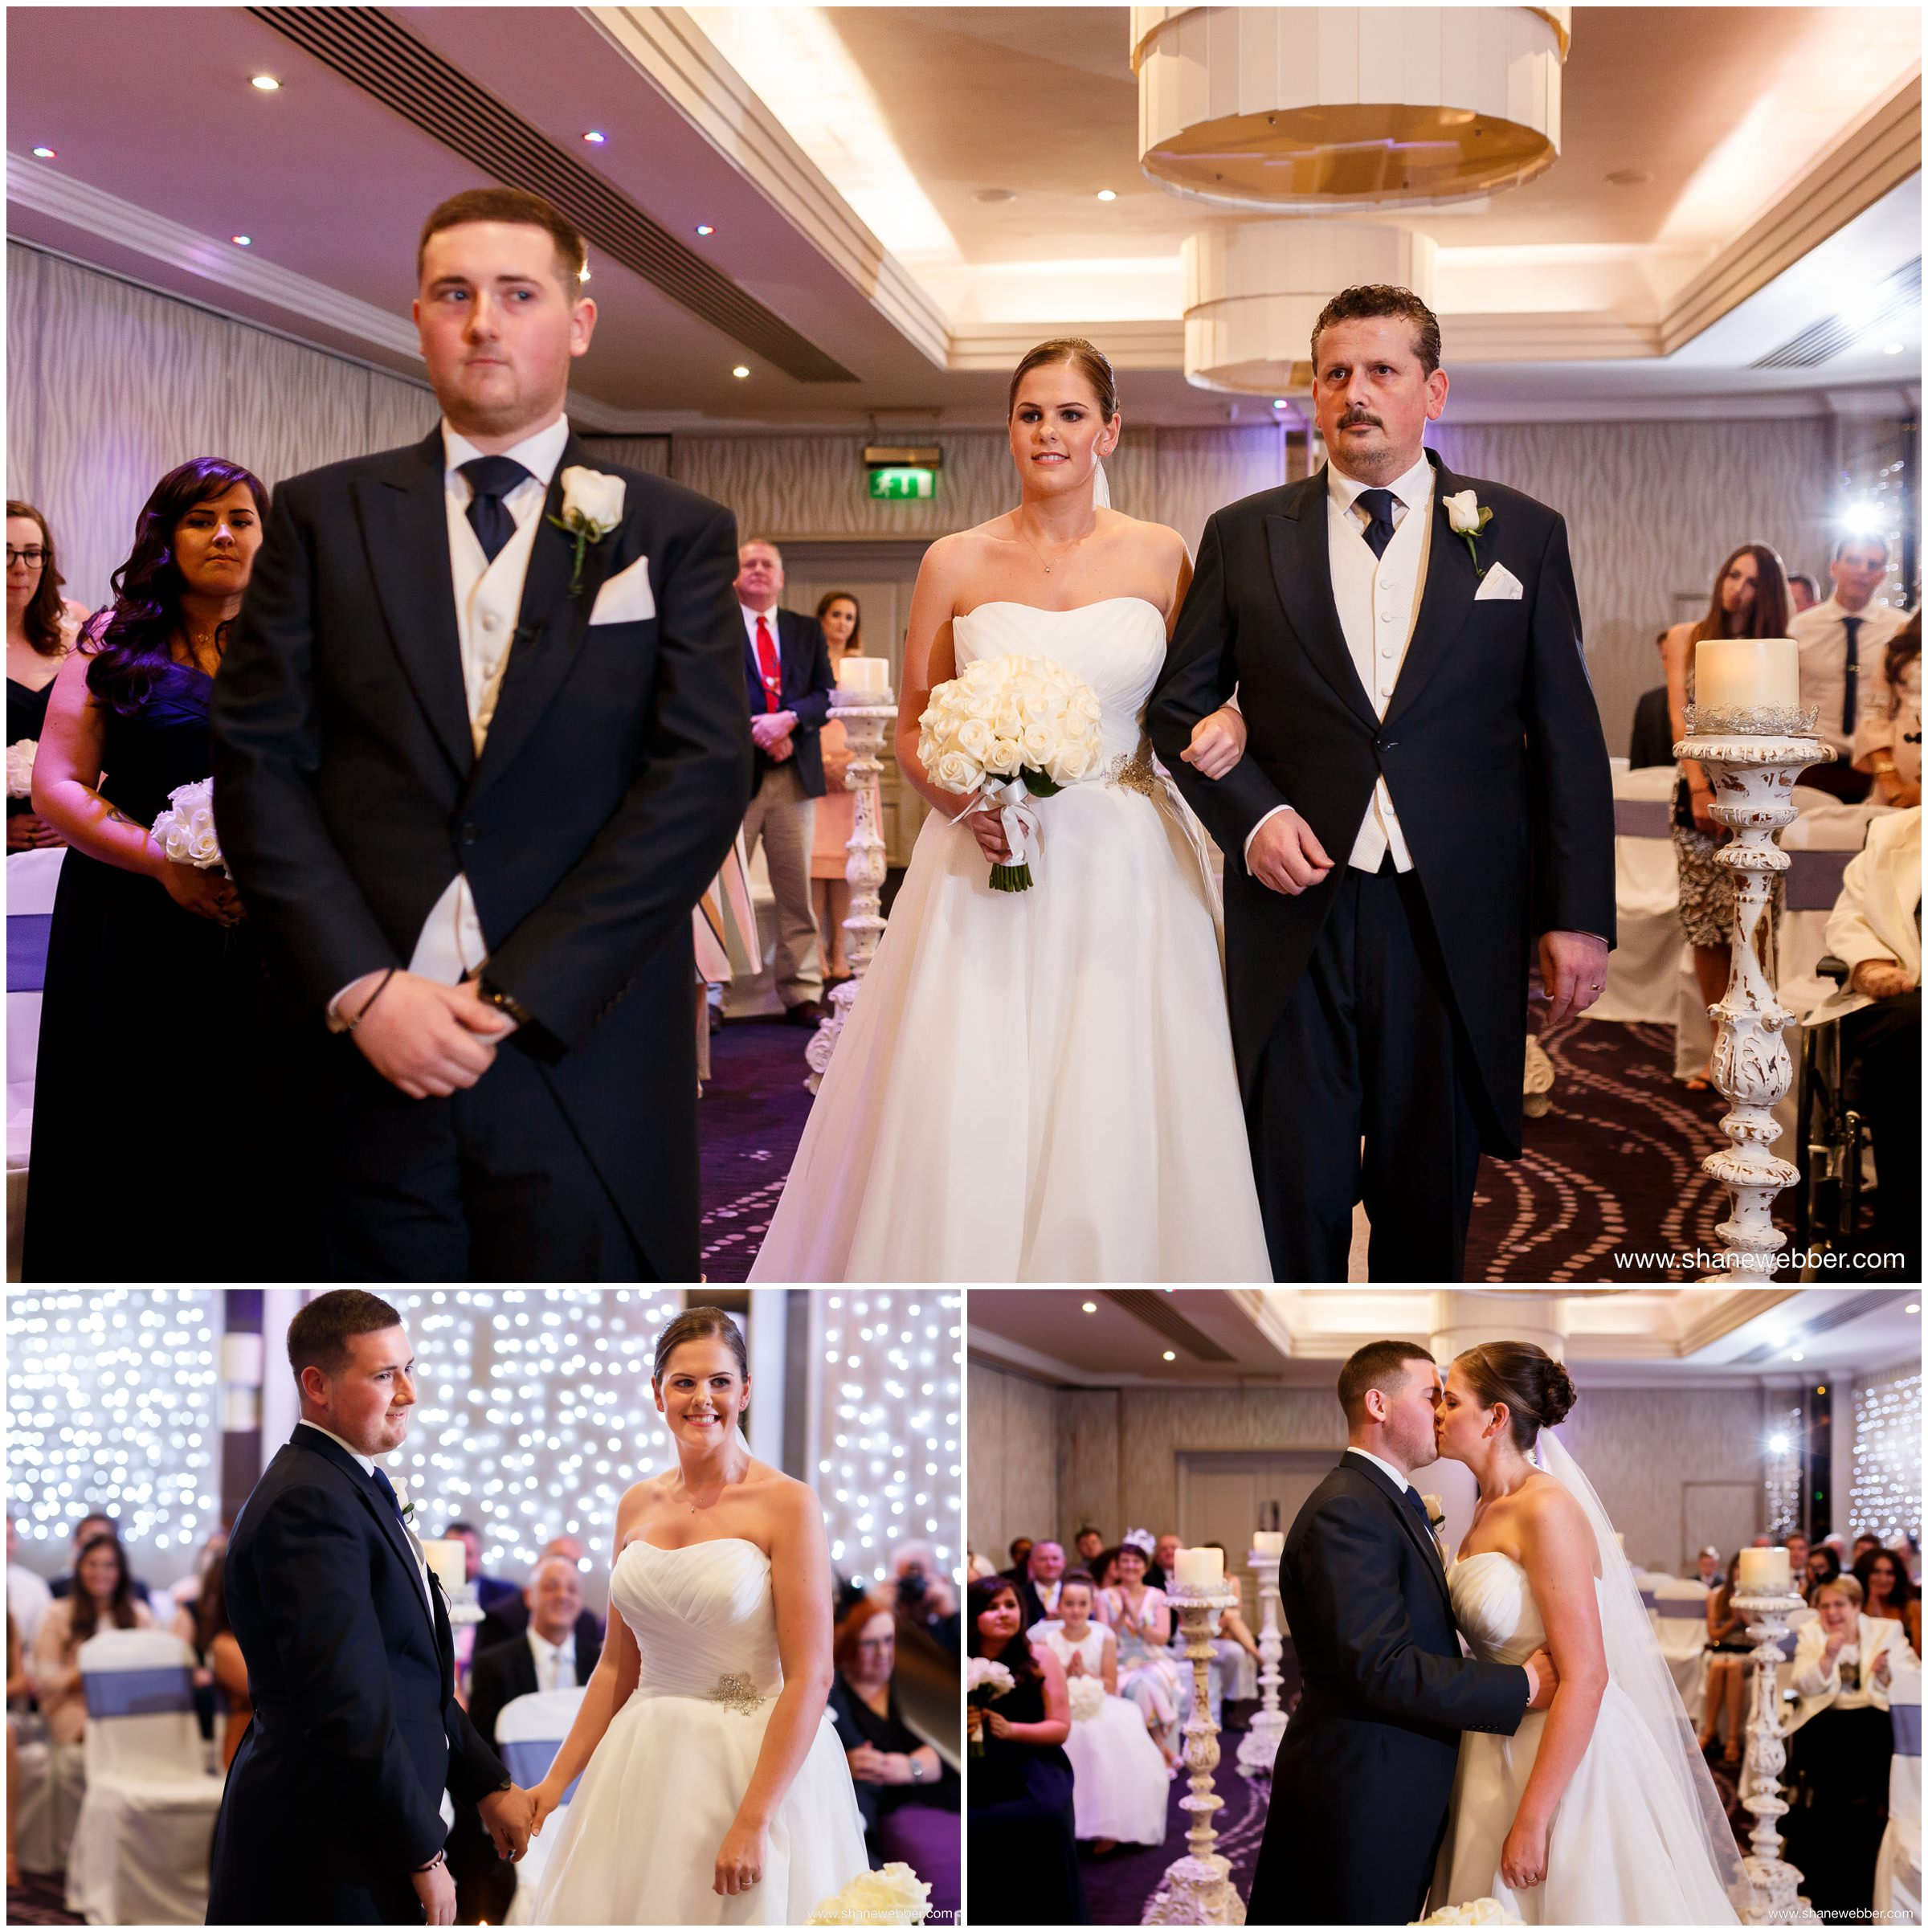 Bride walking down the aisle with Dad at the Grosvenor Pulford Hotel Chester